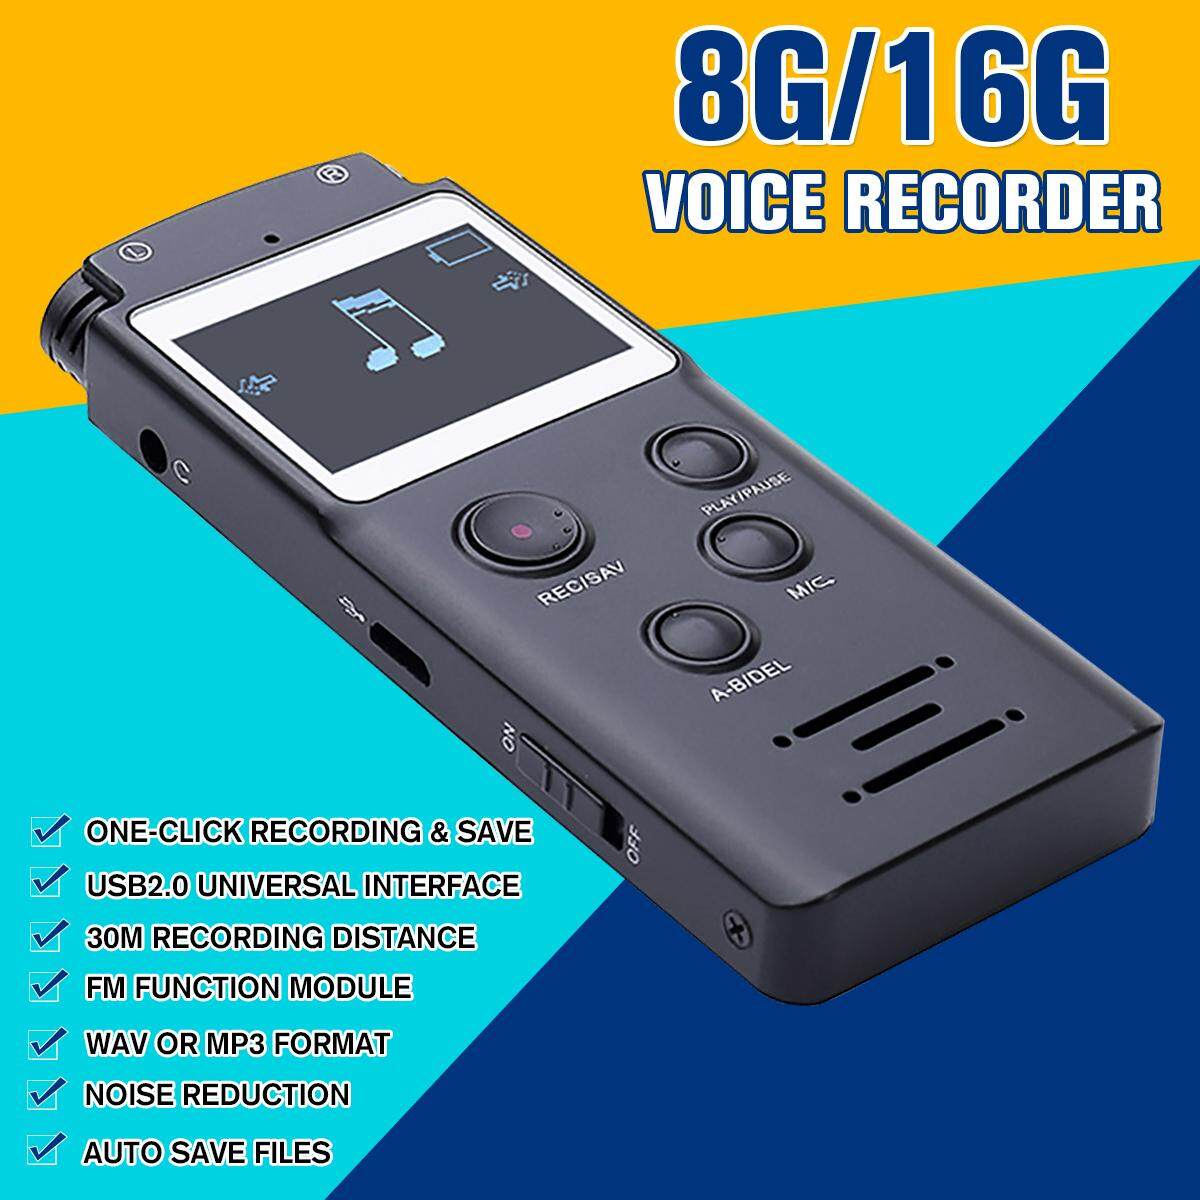 【Built-in 16GB Flash Memory】 Audio FM Recorder Voice Recorder USB 2.0 High Speed One-click Recording For Meeting